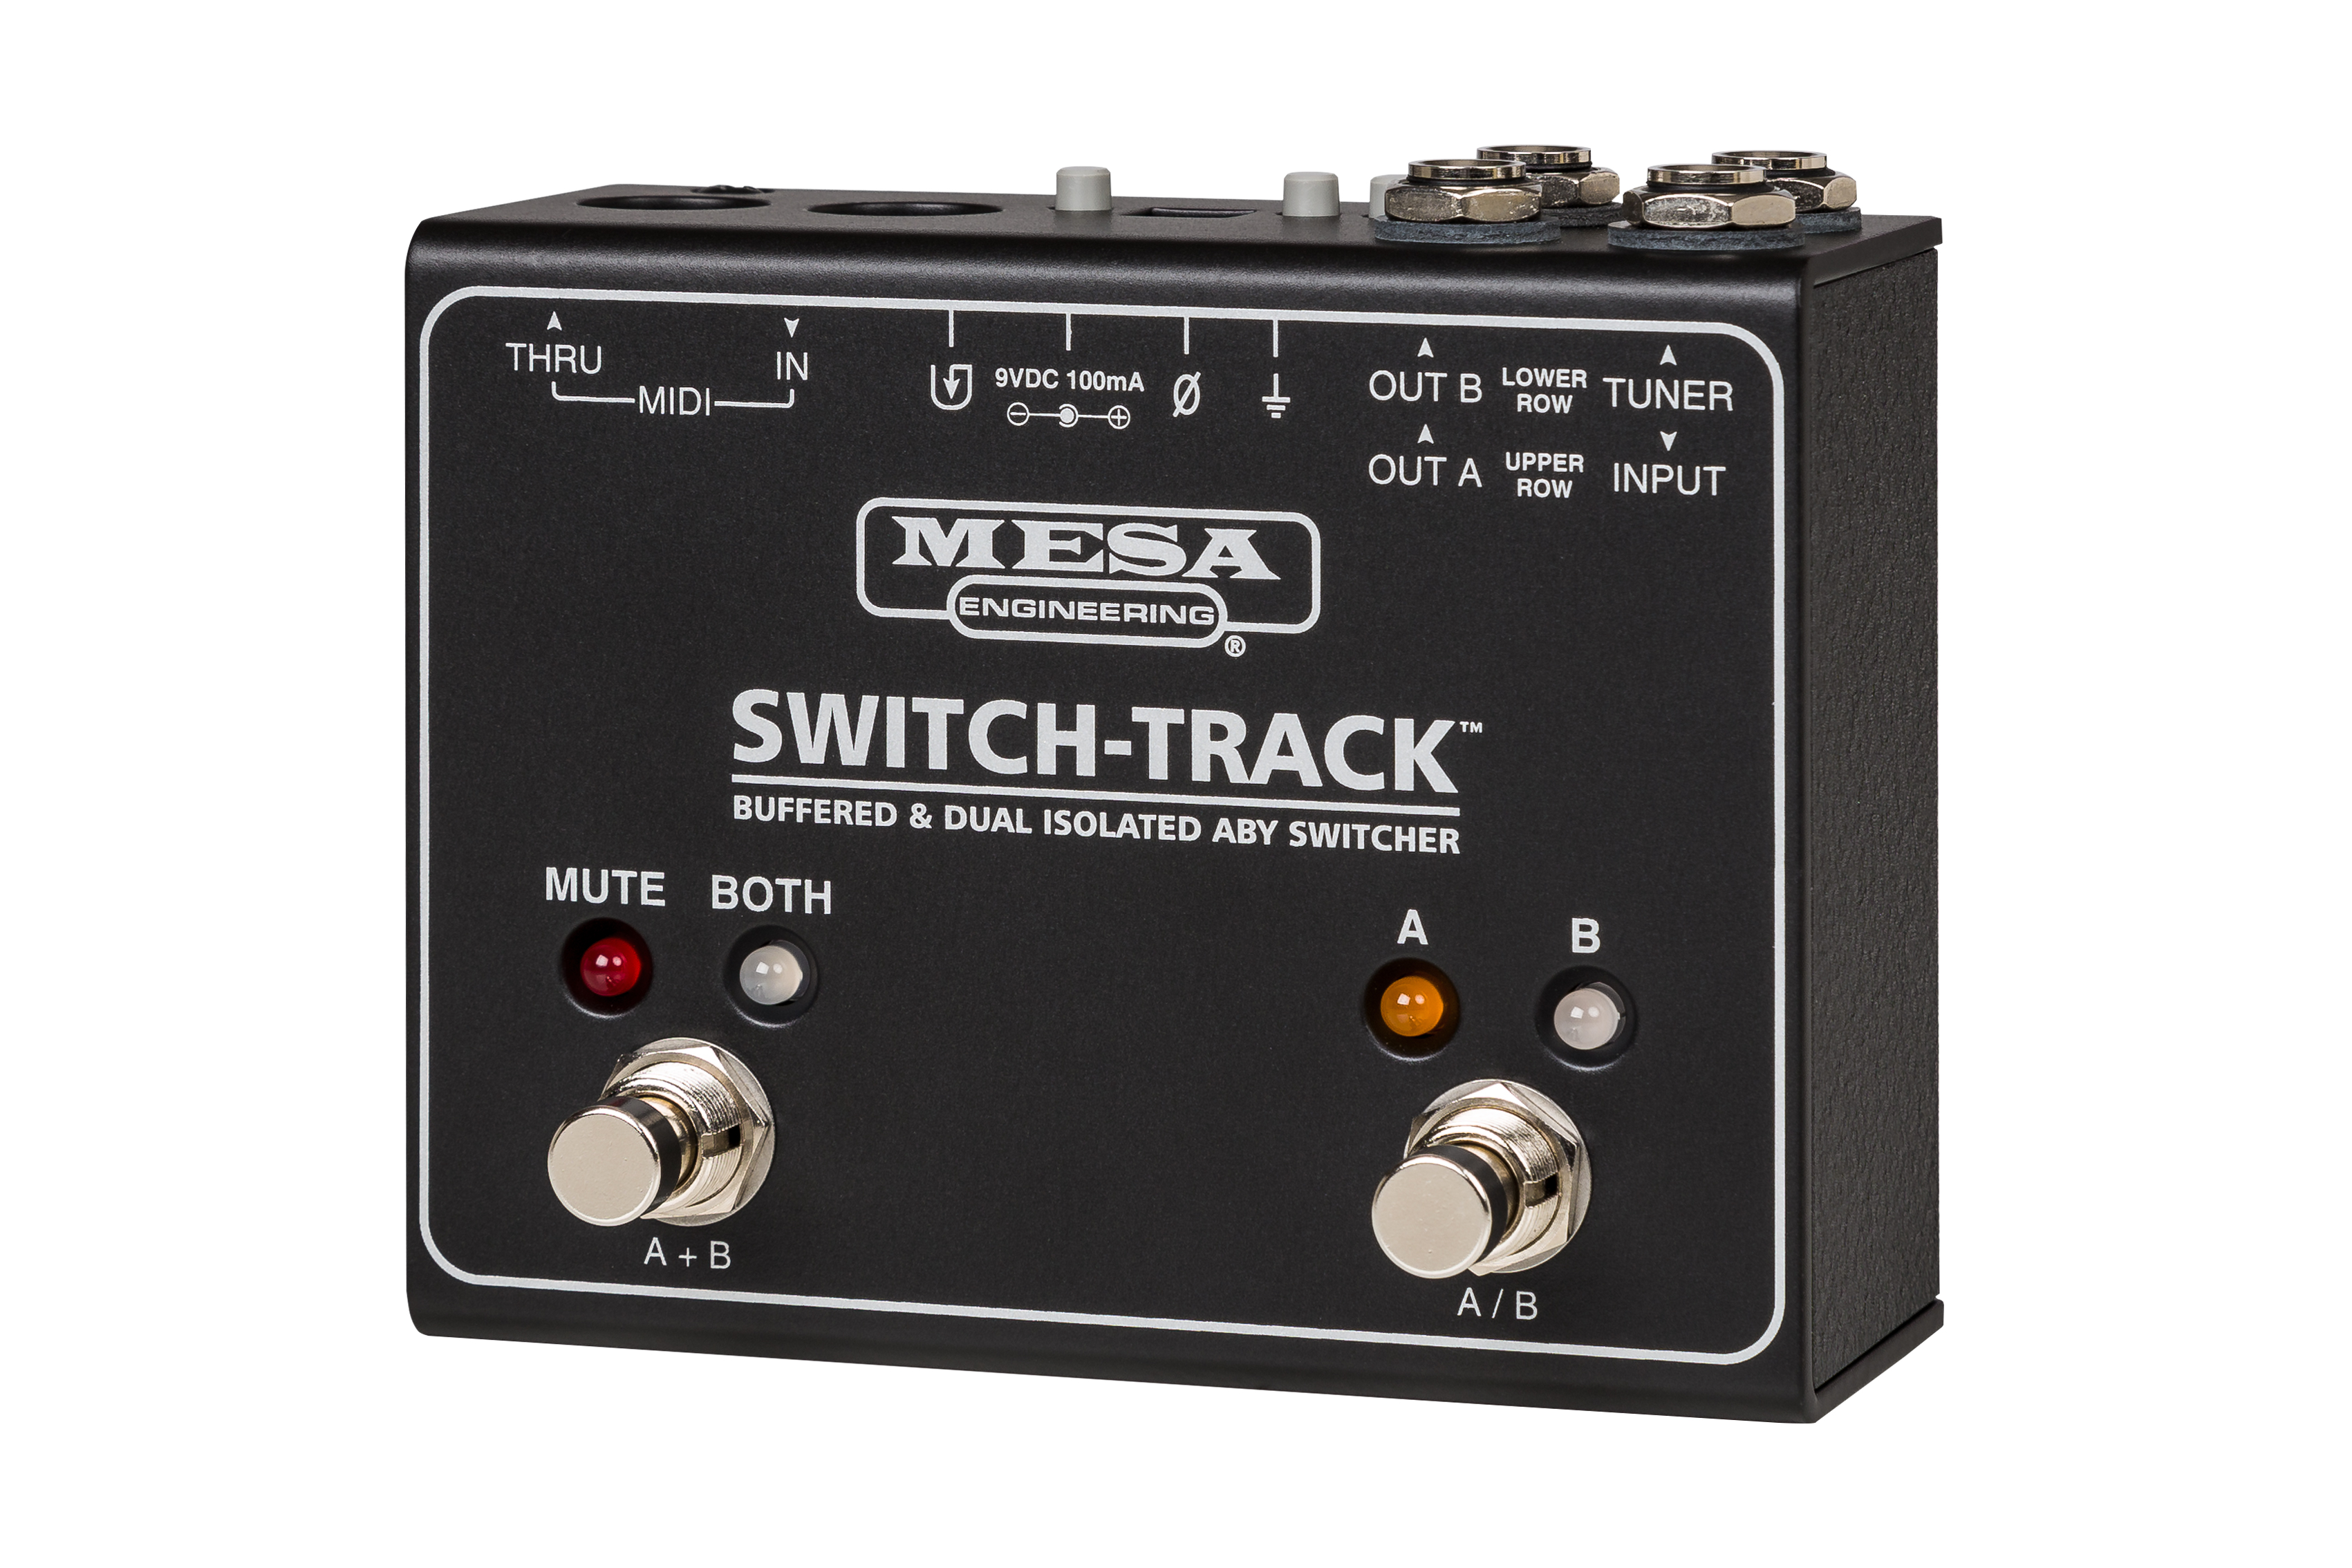 switch-track-left